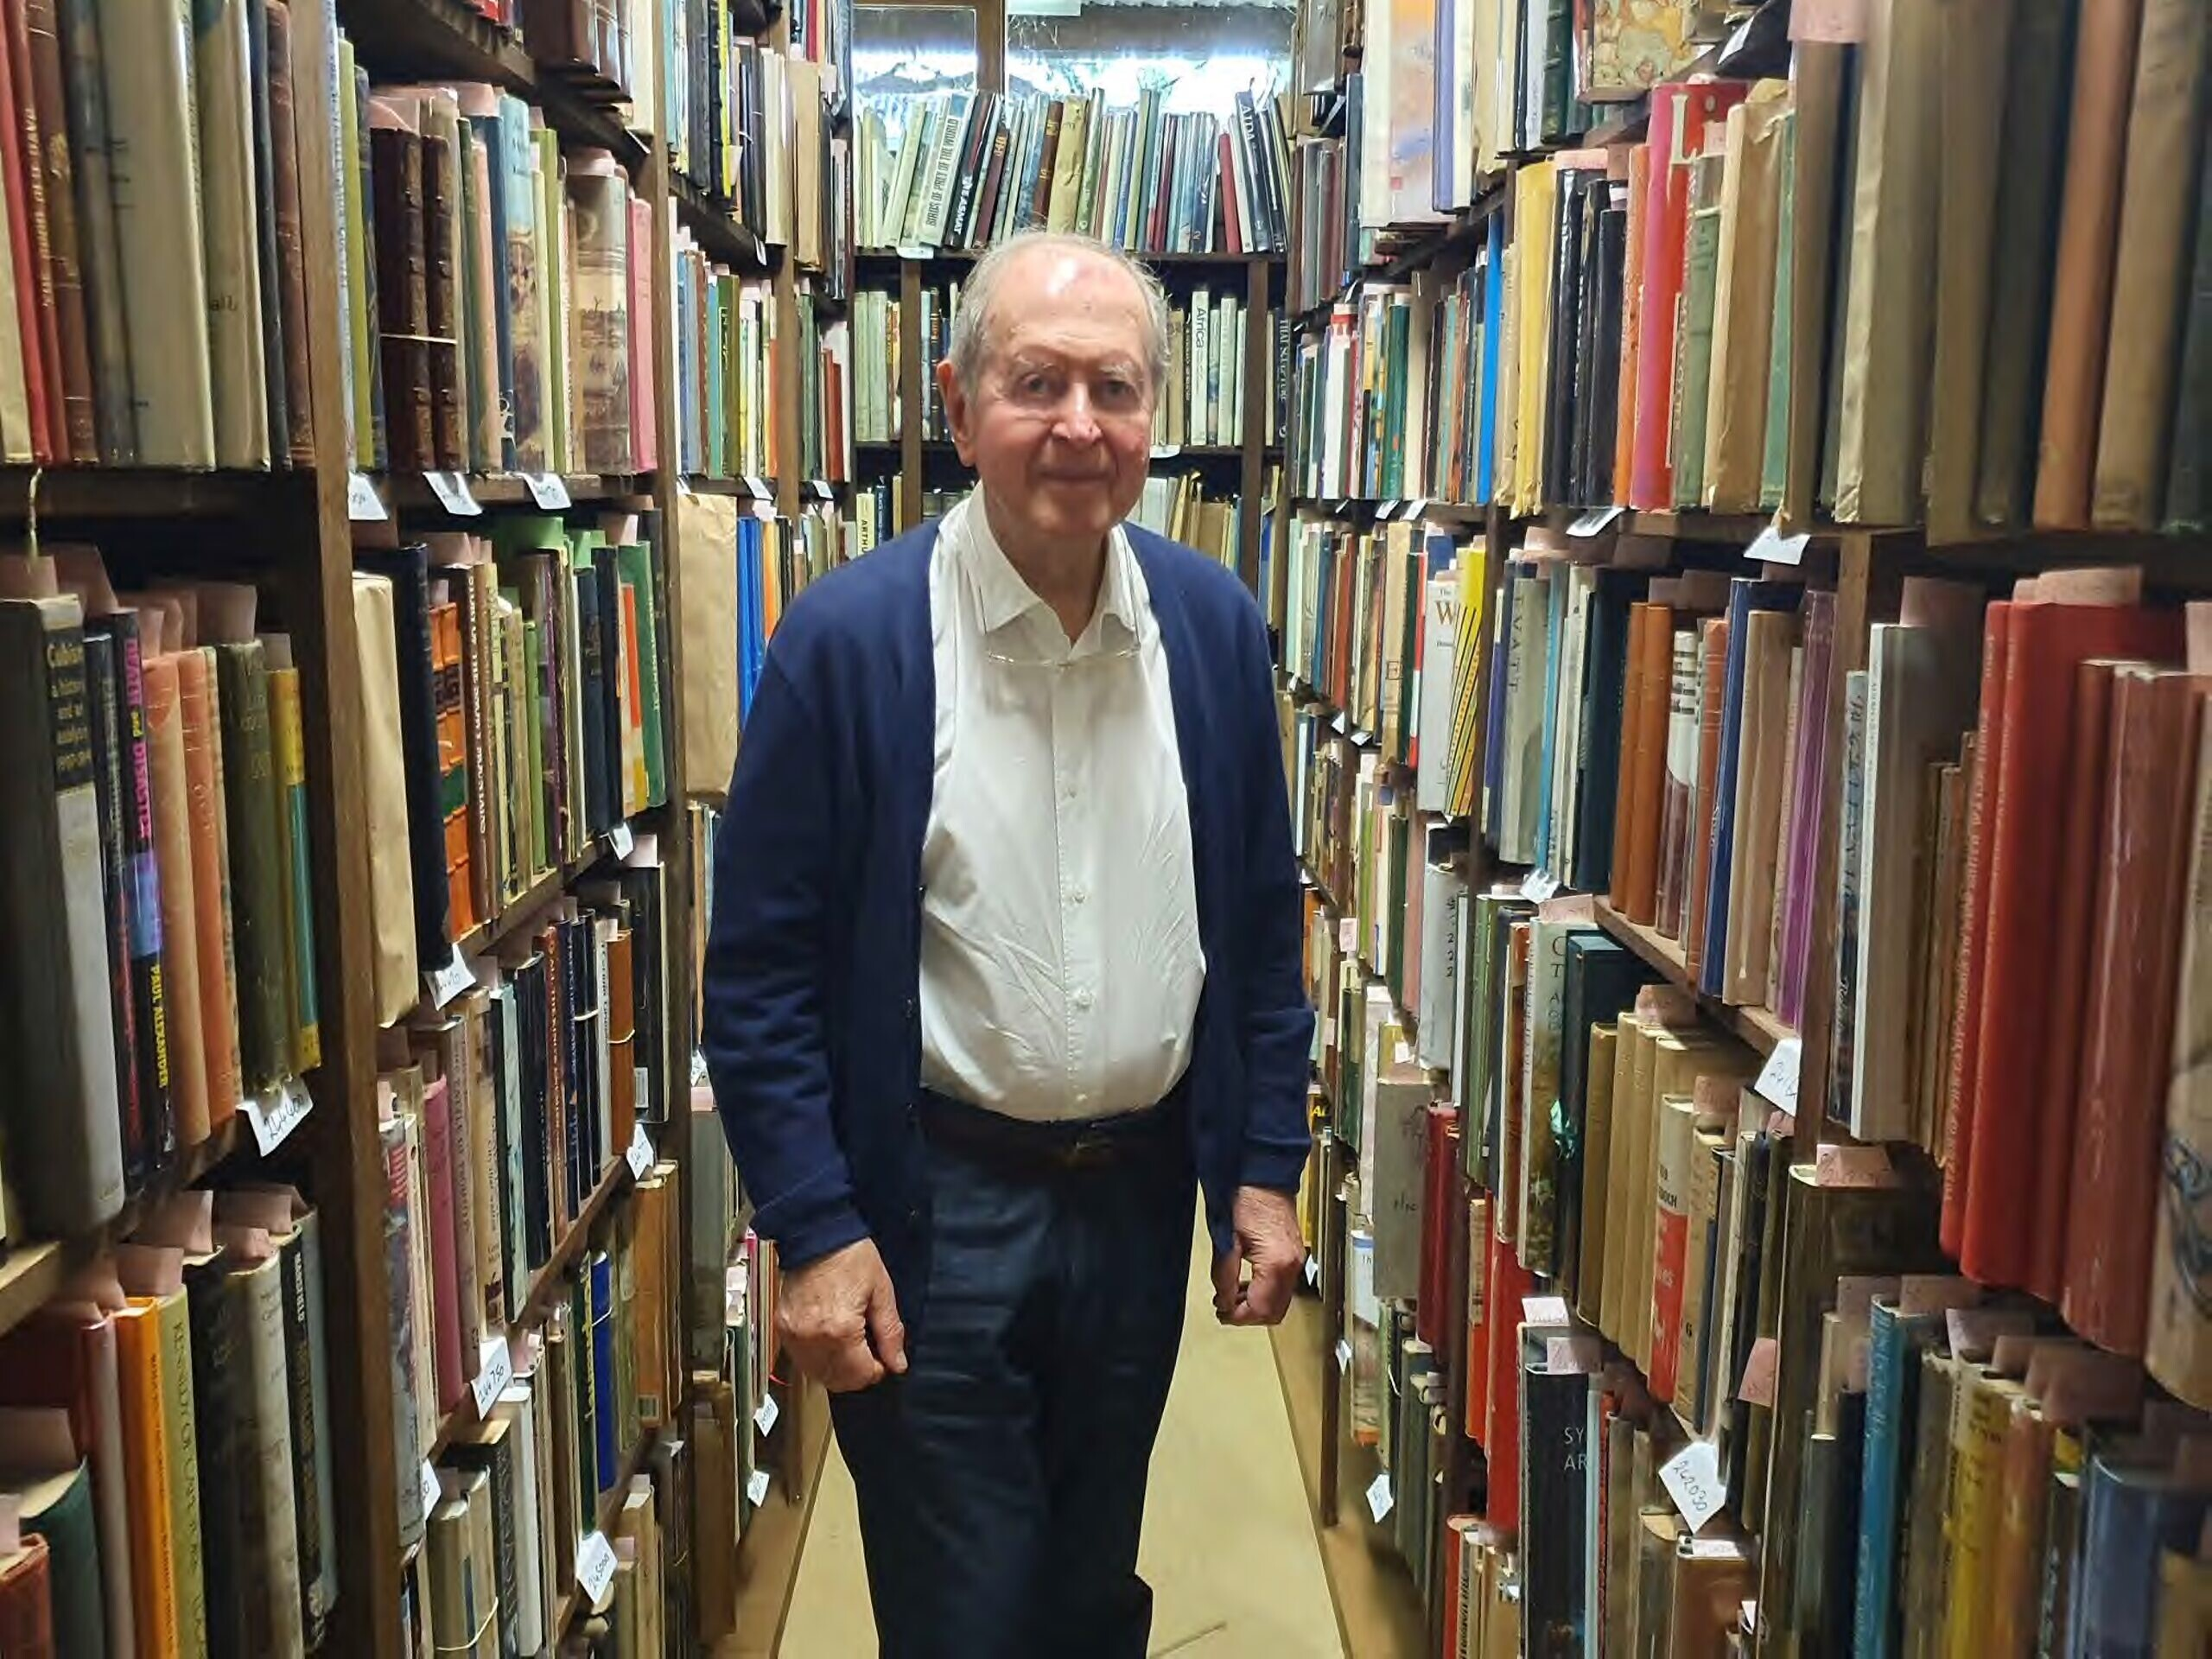 Leo Berkelouw among rare and collectible books at the Bendooley Estate. Photo: Sophie Deutsch